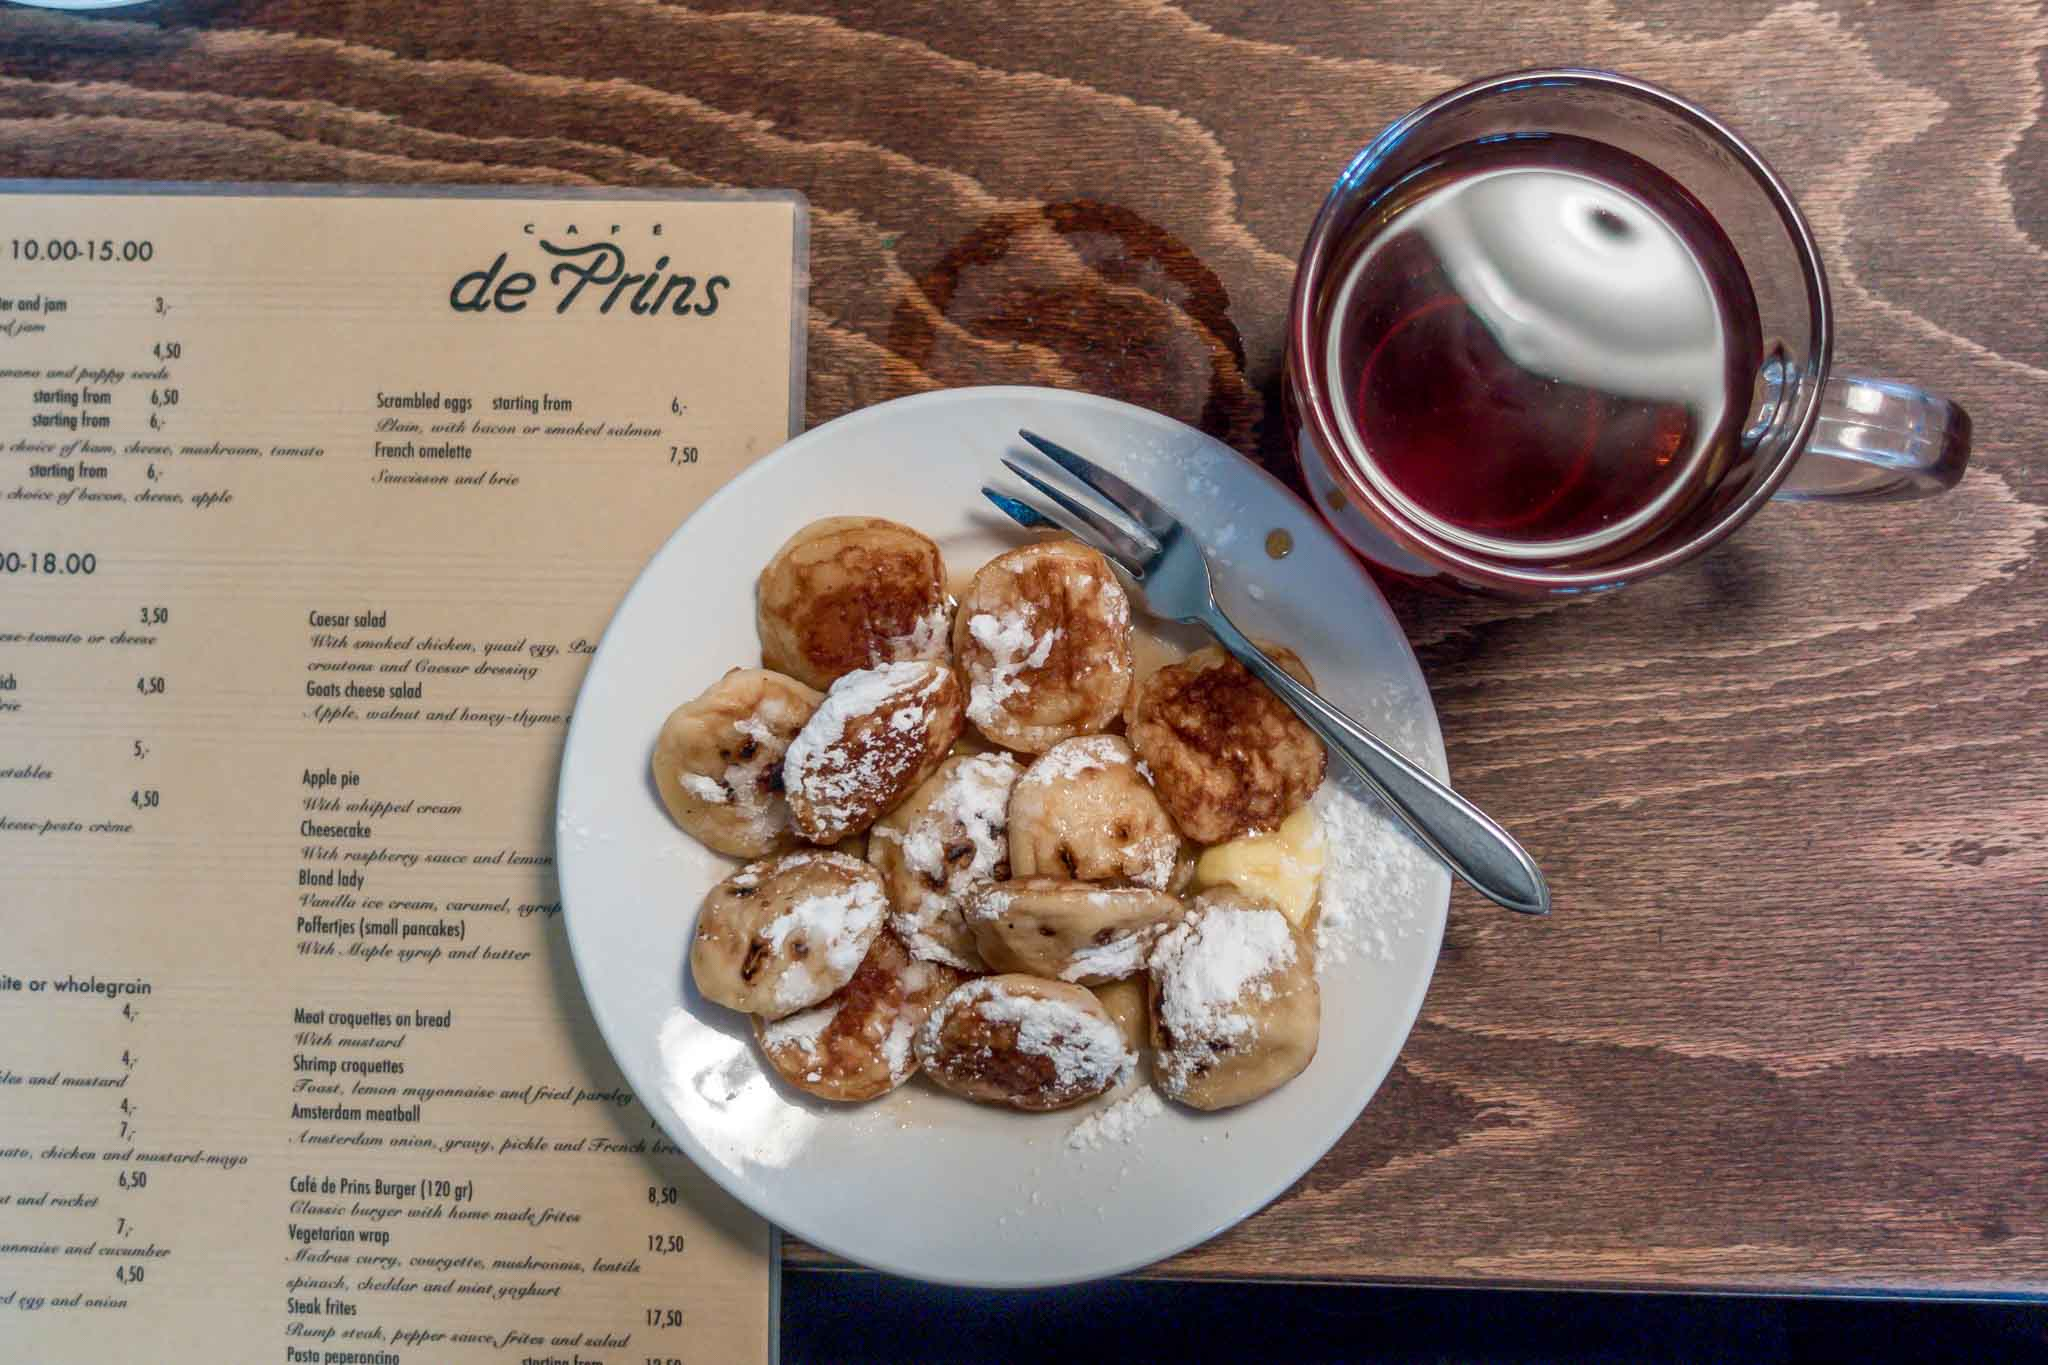 Poffertjes (puffy pancakes) are a great Netherlands food treat